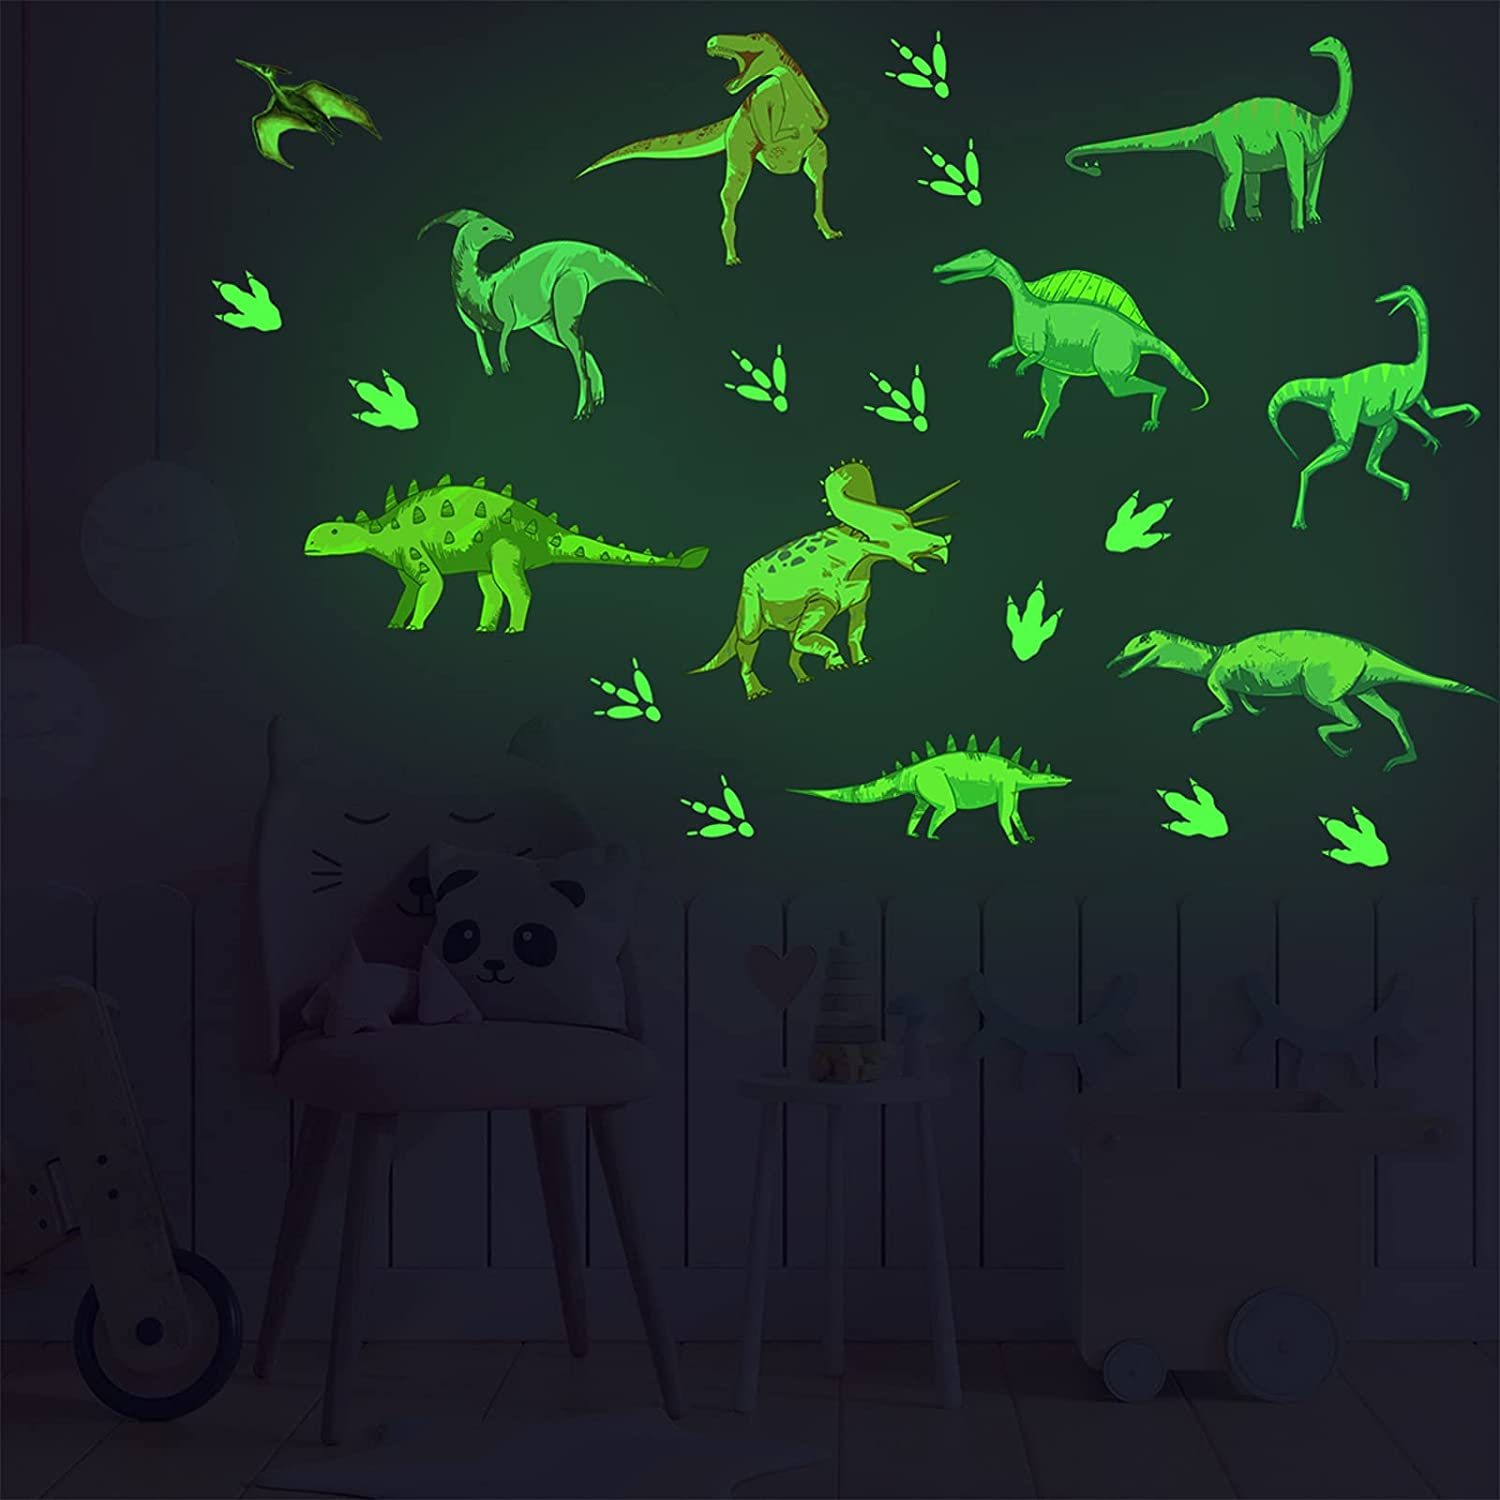 COKOYY Glow in The Dark Dinosaurs Wall Decals, Luminous Dinosaurs with Footprints Wall Stickers, Removable DIY Bright Decoration for Ceiling, Boys Bedroom, Nursery, Living Room Décor